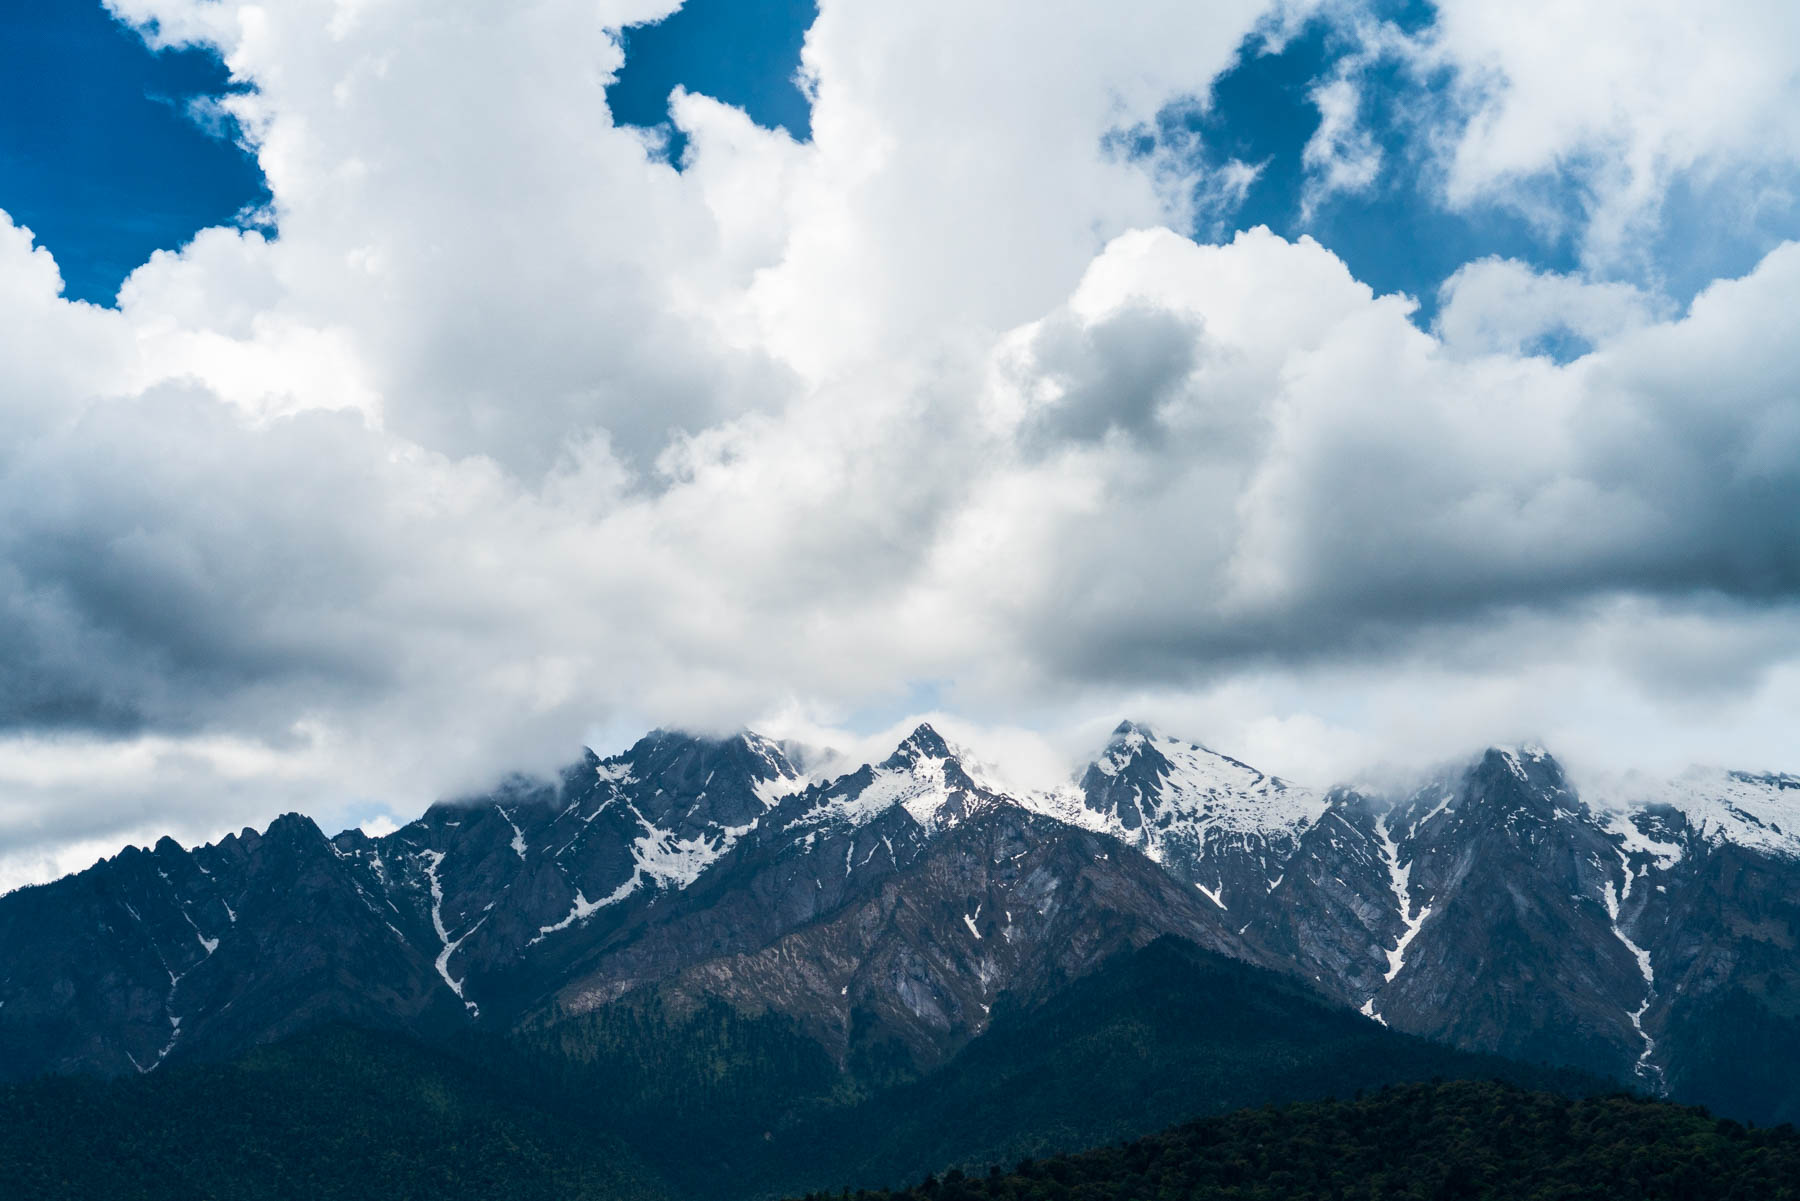 Backpacking in Arunachal Pradesh, India - Mountains in Mechuka - Lost With Purpose